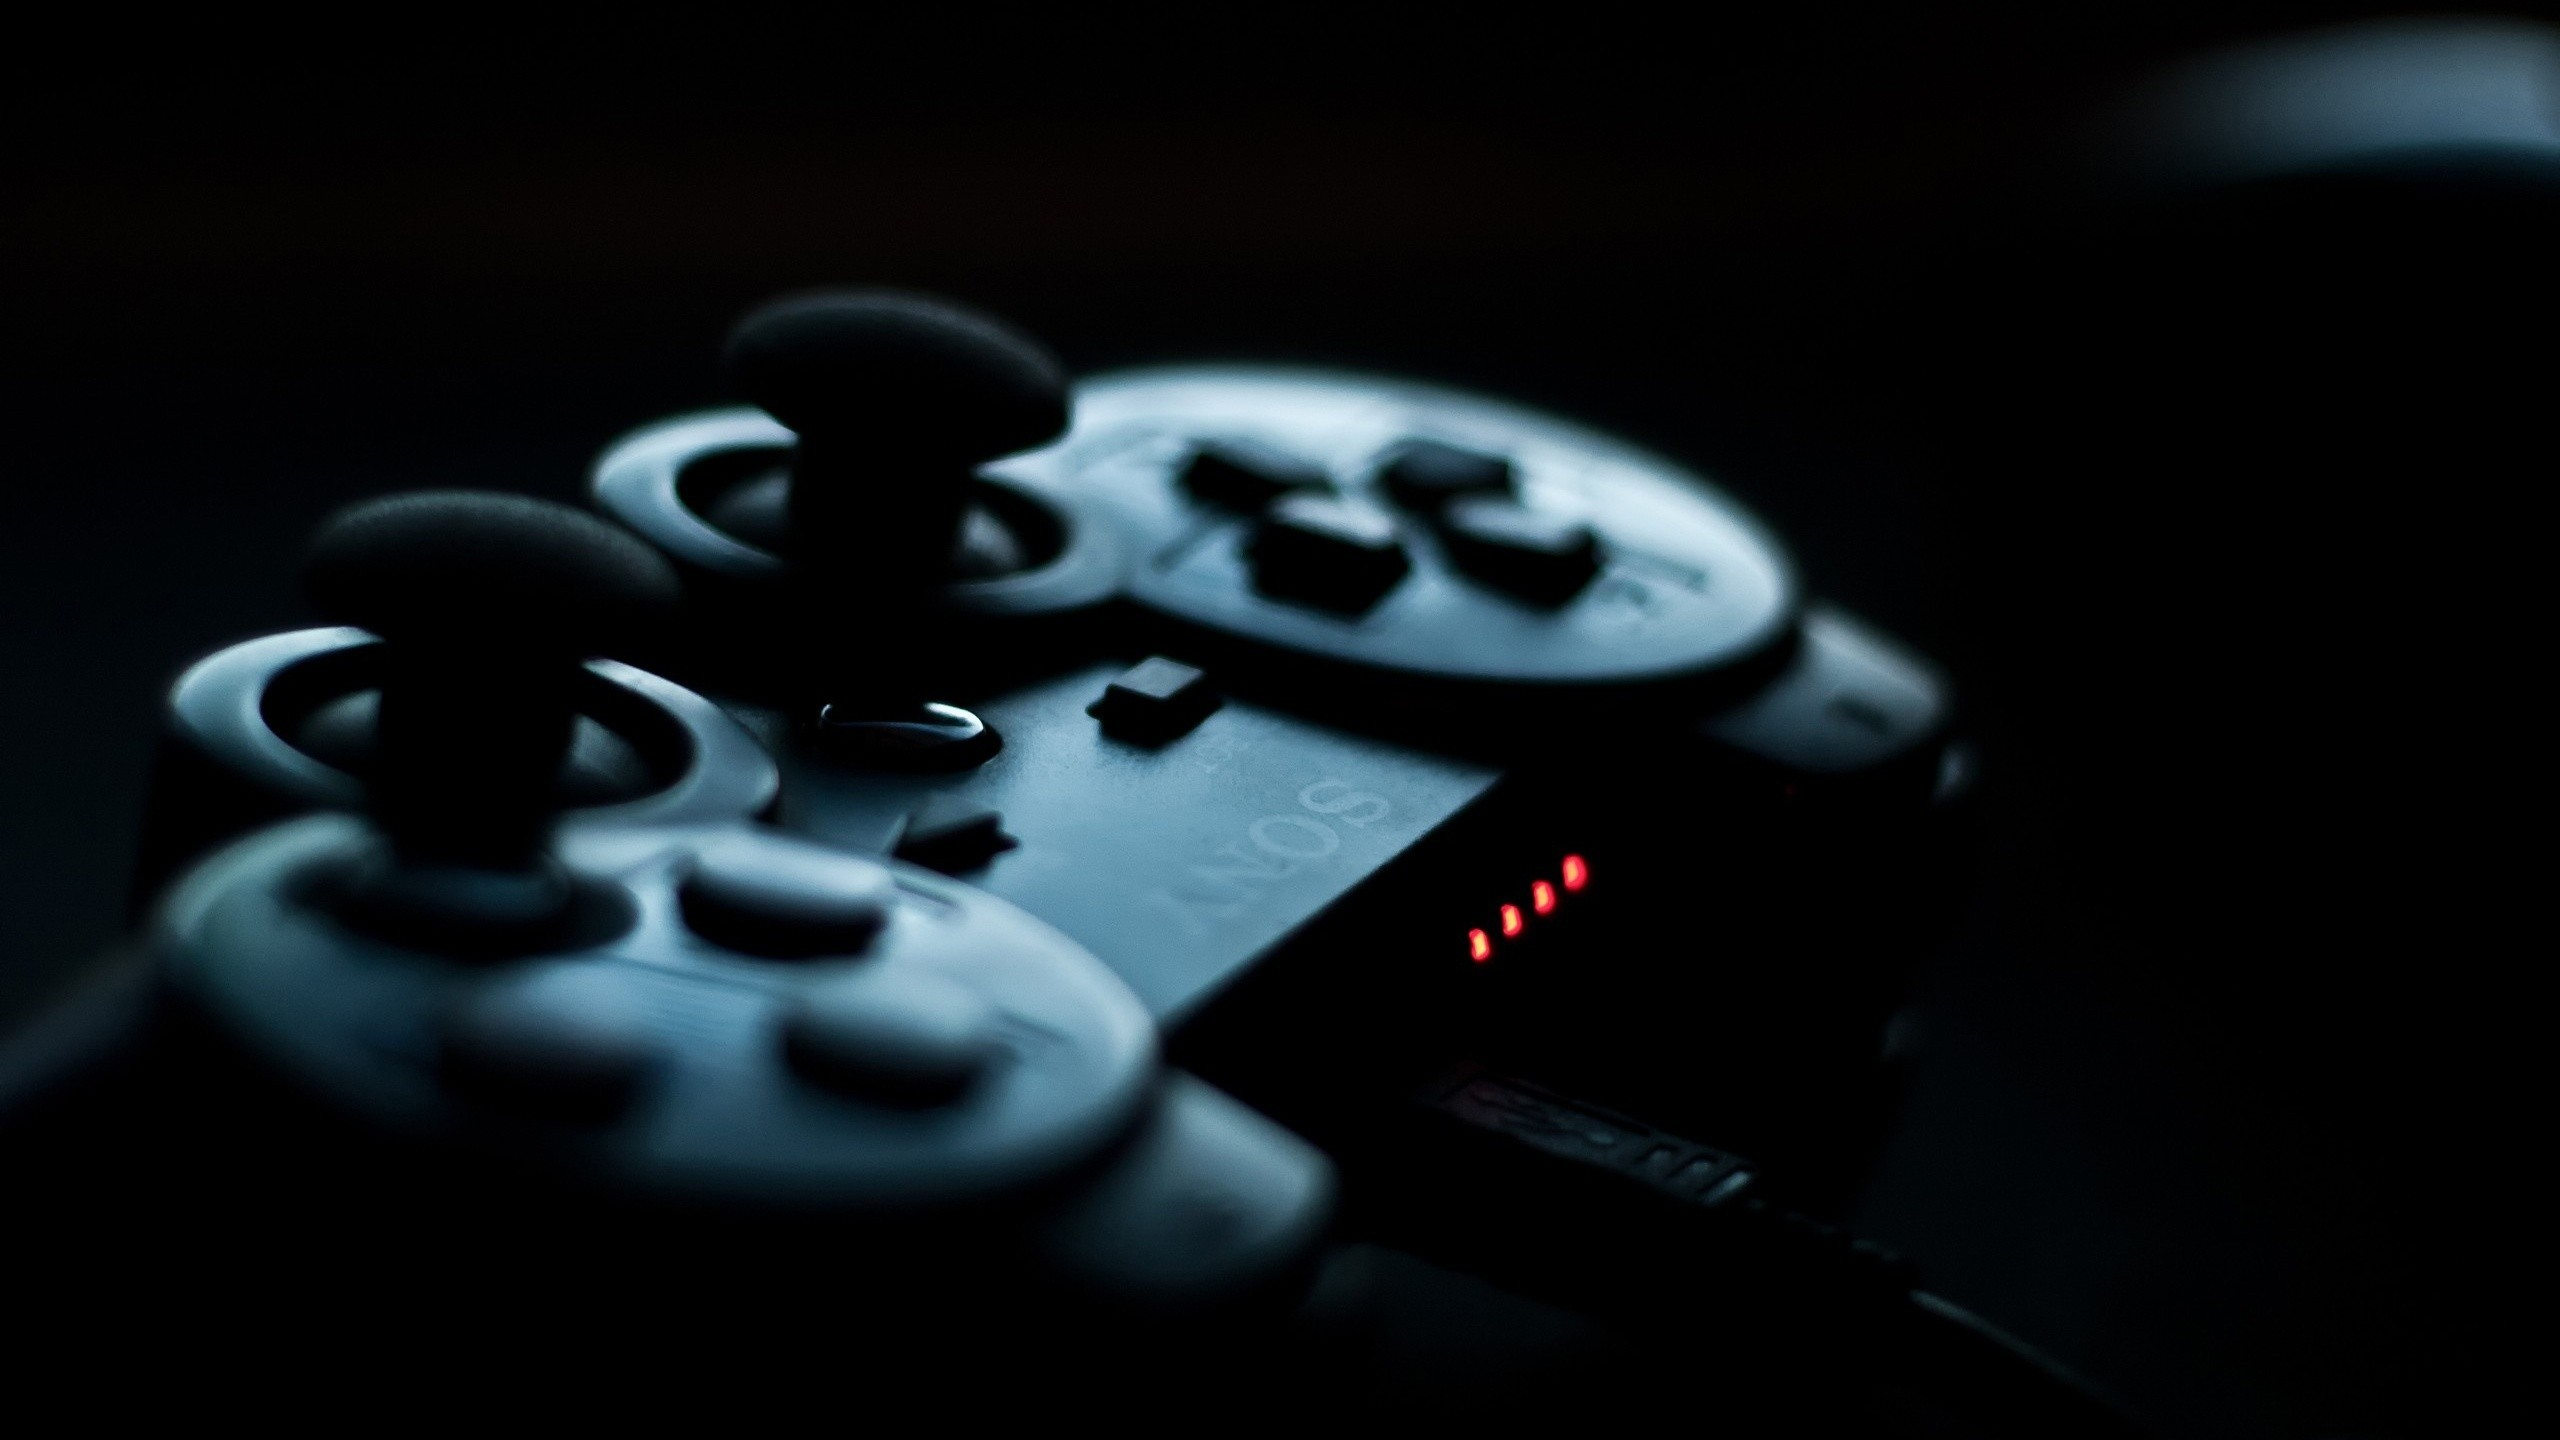 General 2560x1440 PlayStation PlayStation 3 controllers Sony black depth of field video games technology blue macro DualShock dark buttons simple background black background